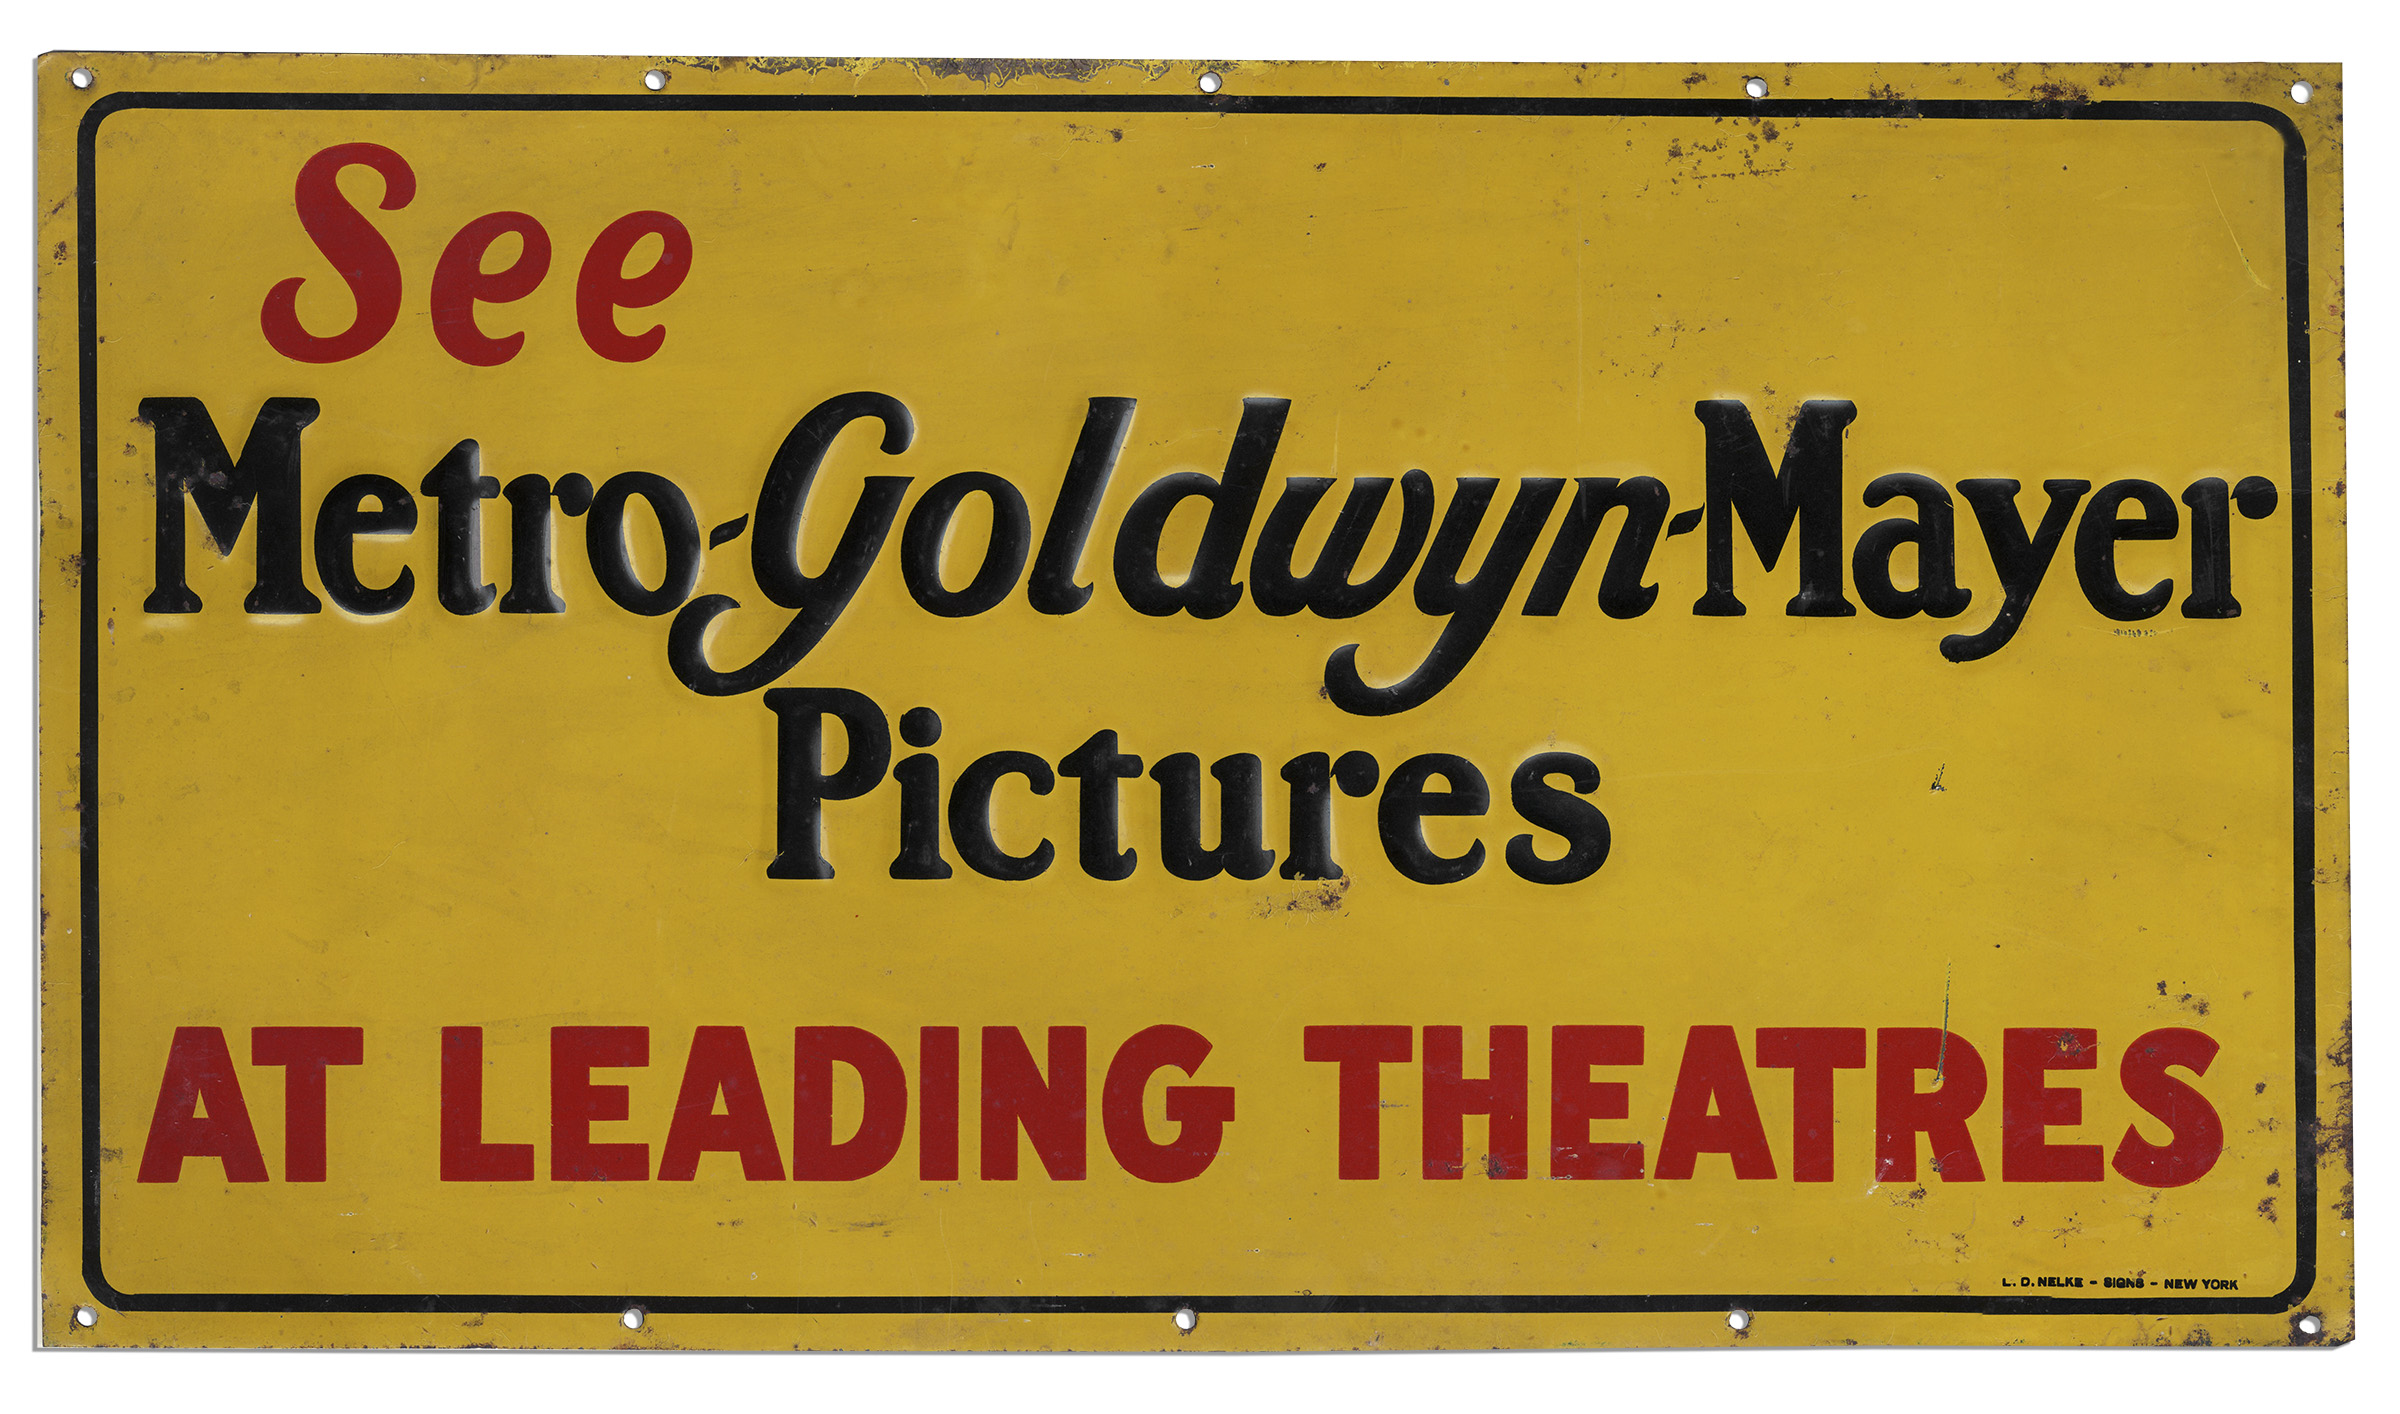 Vintage Hollywood Sign For Metro Goldwyn Mayer Pictures